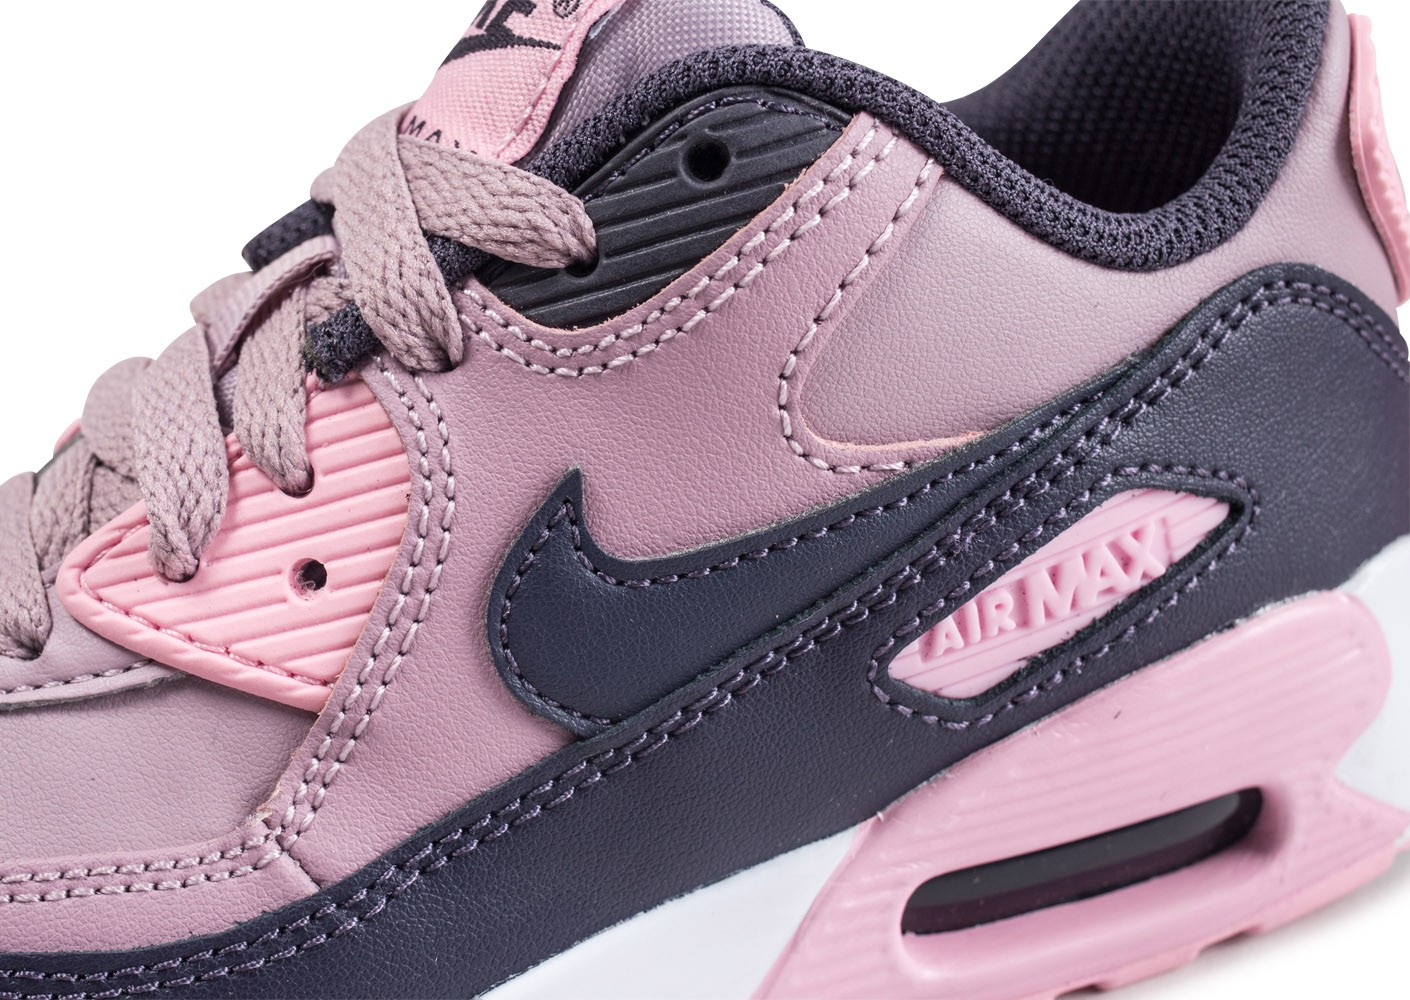 new arrival f347b deacb ... Chaussures Nike Air Max 90 Leather Pre-School rose enfant vue dessus